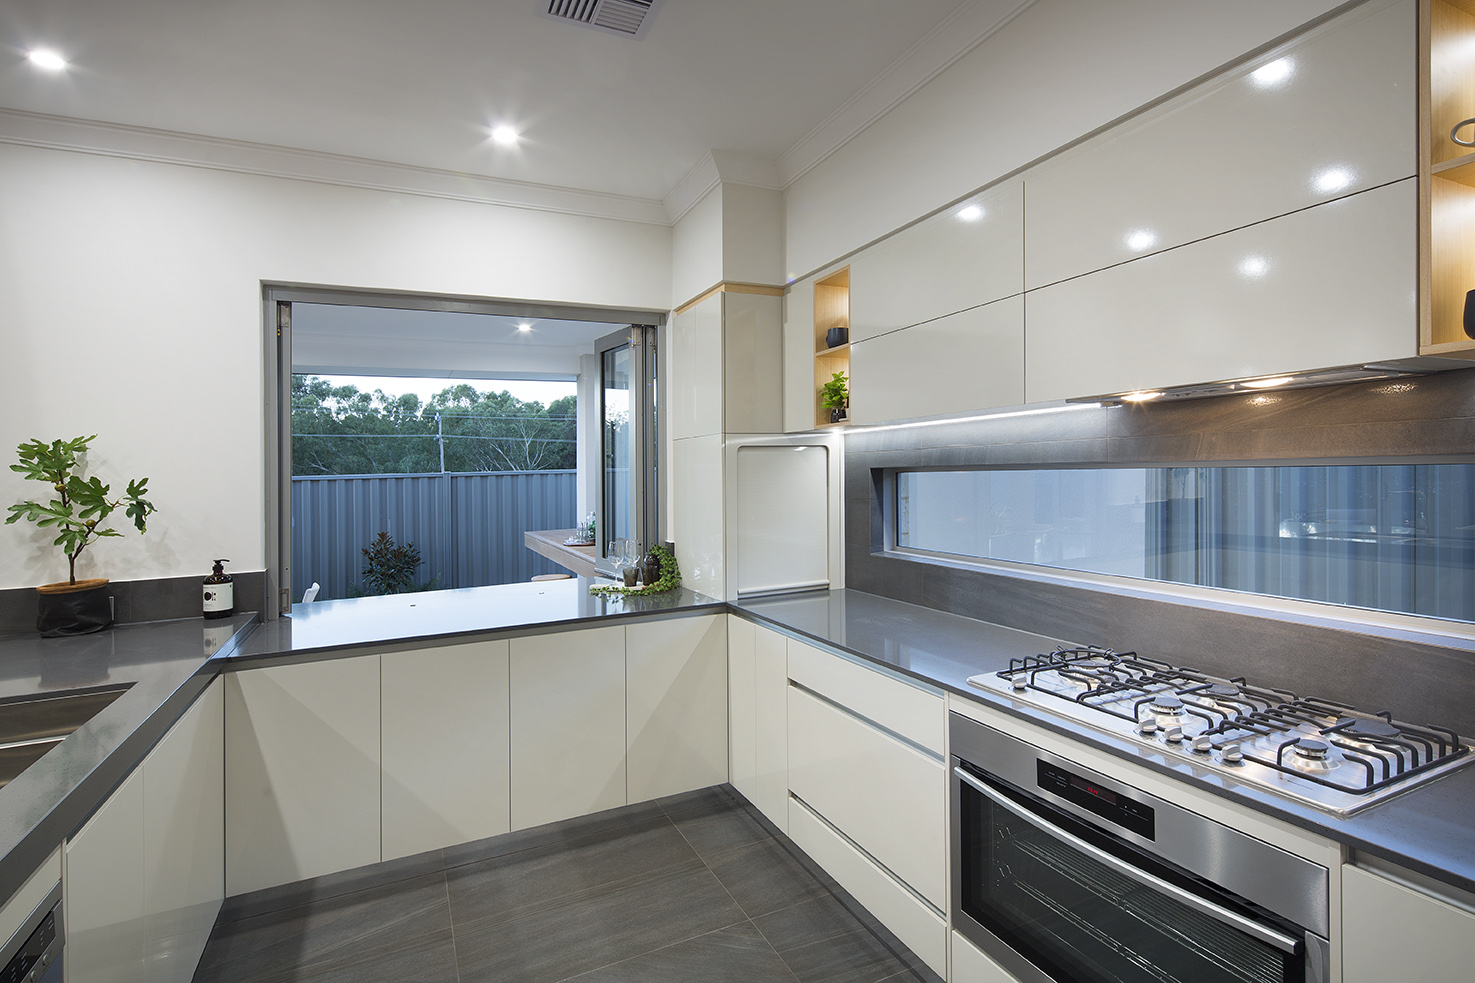 The Ultimate Kitchen Design Guide – A Building Consultant Writes (or ...